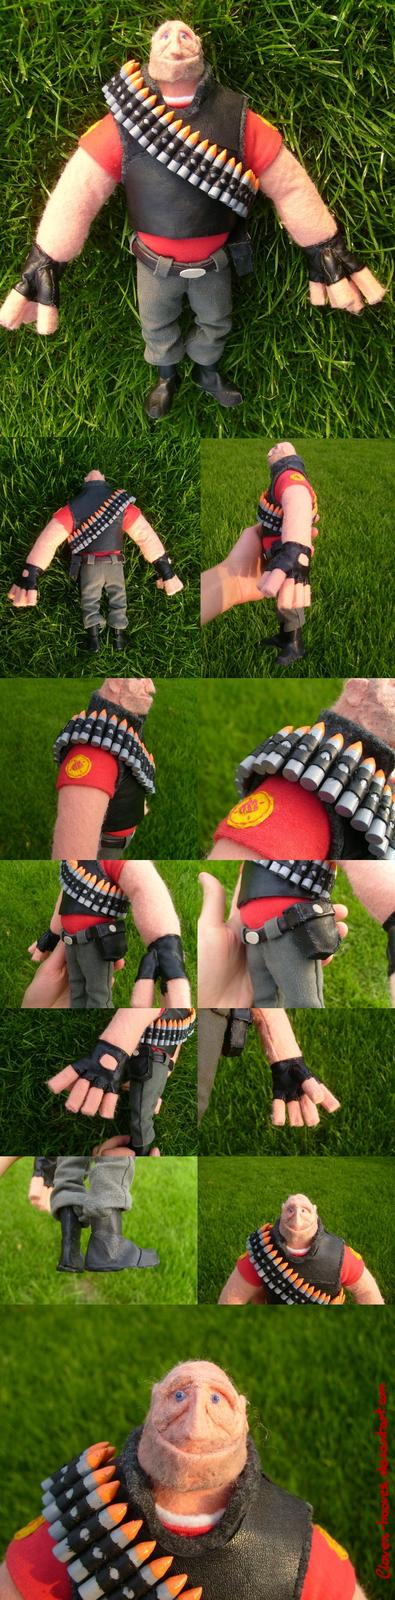 heavy_weapons_guy_plushie__3_by_cloven_hooves-d2yq52j.jpg